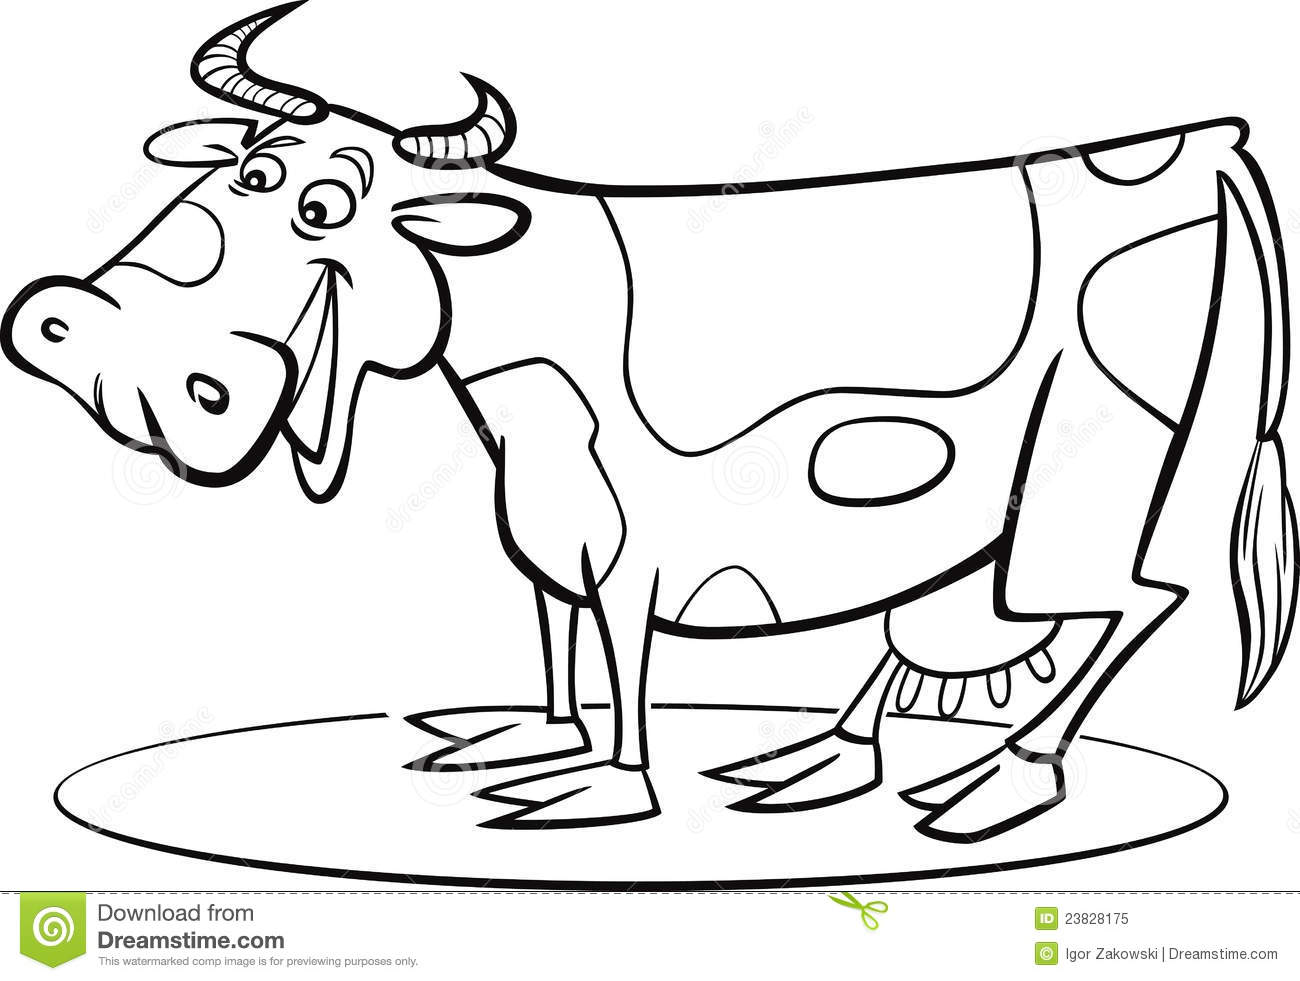 Cartoon cow coloring page stock vector. Illustration of ...